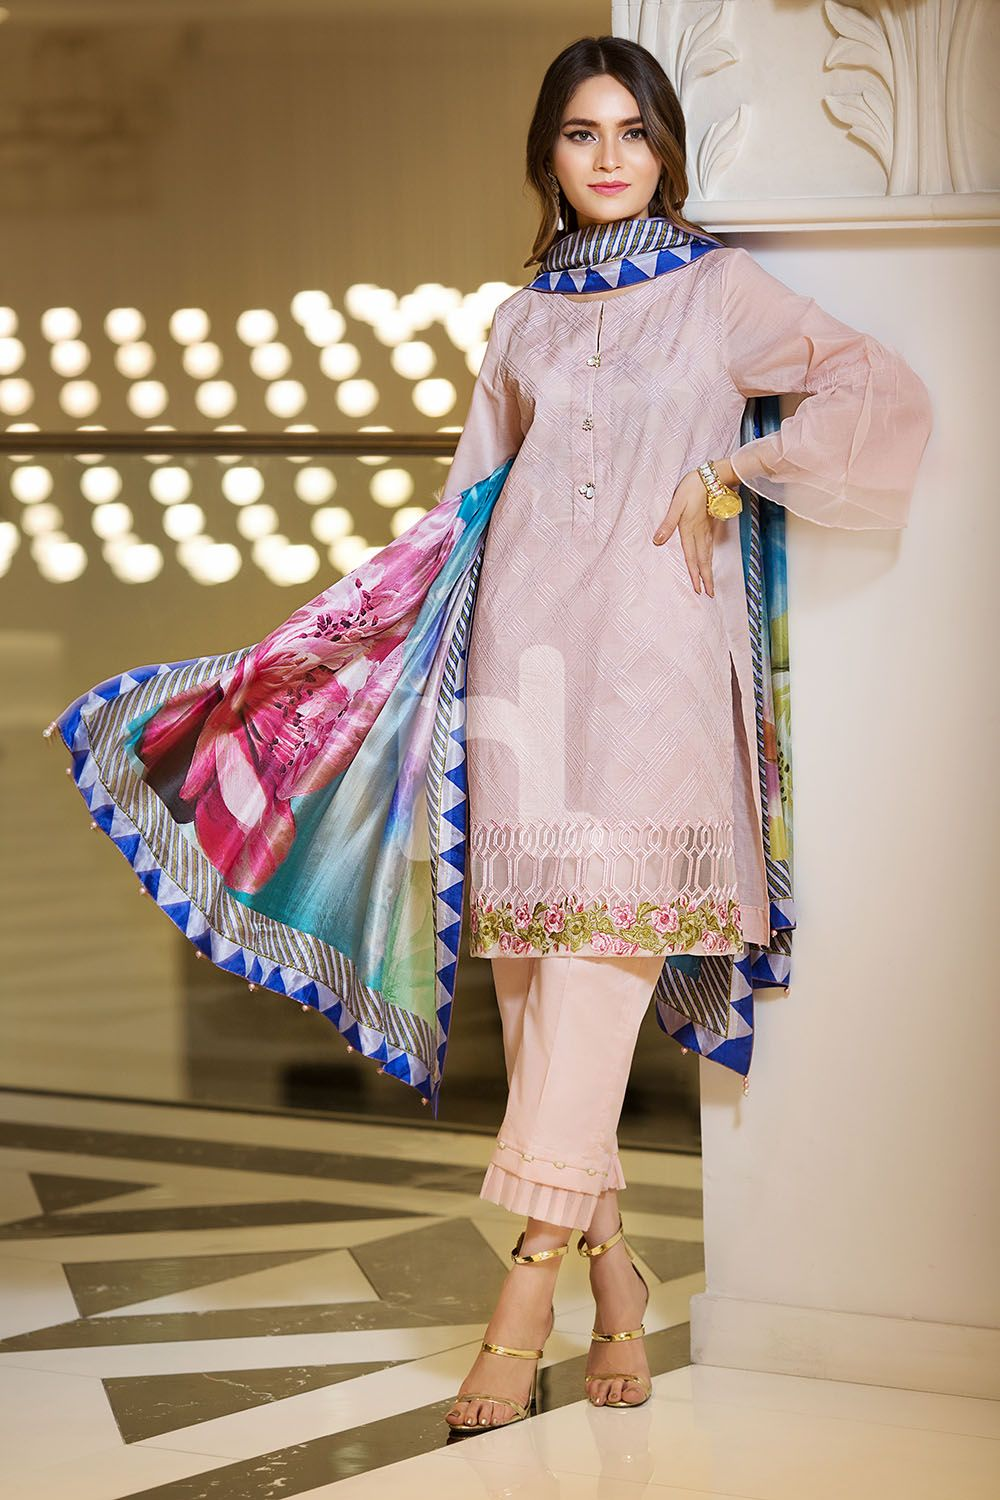 983a55423db Elegant and classy pink colored three piece unstitched lawn dress by Nishat  Linen embroidered 2018 wintercollection  blackfriday  readytowear  pretwear  ...